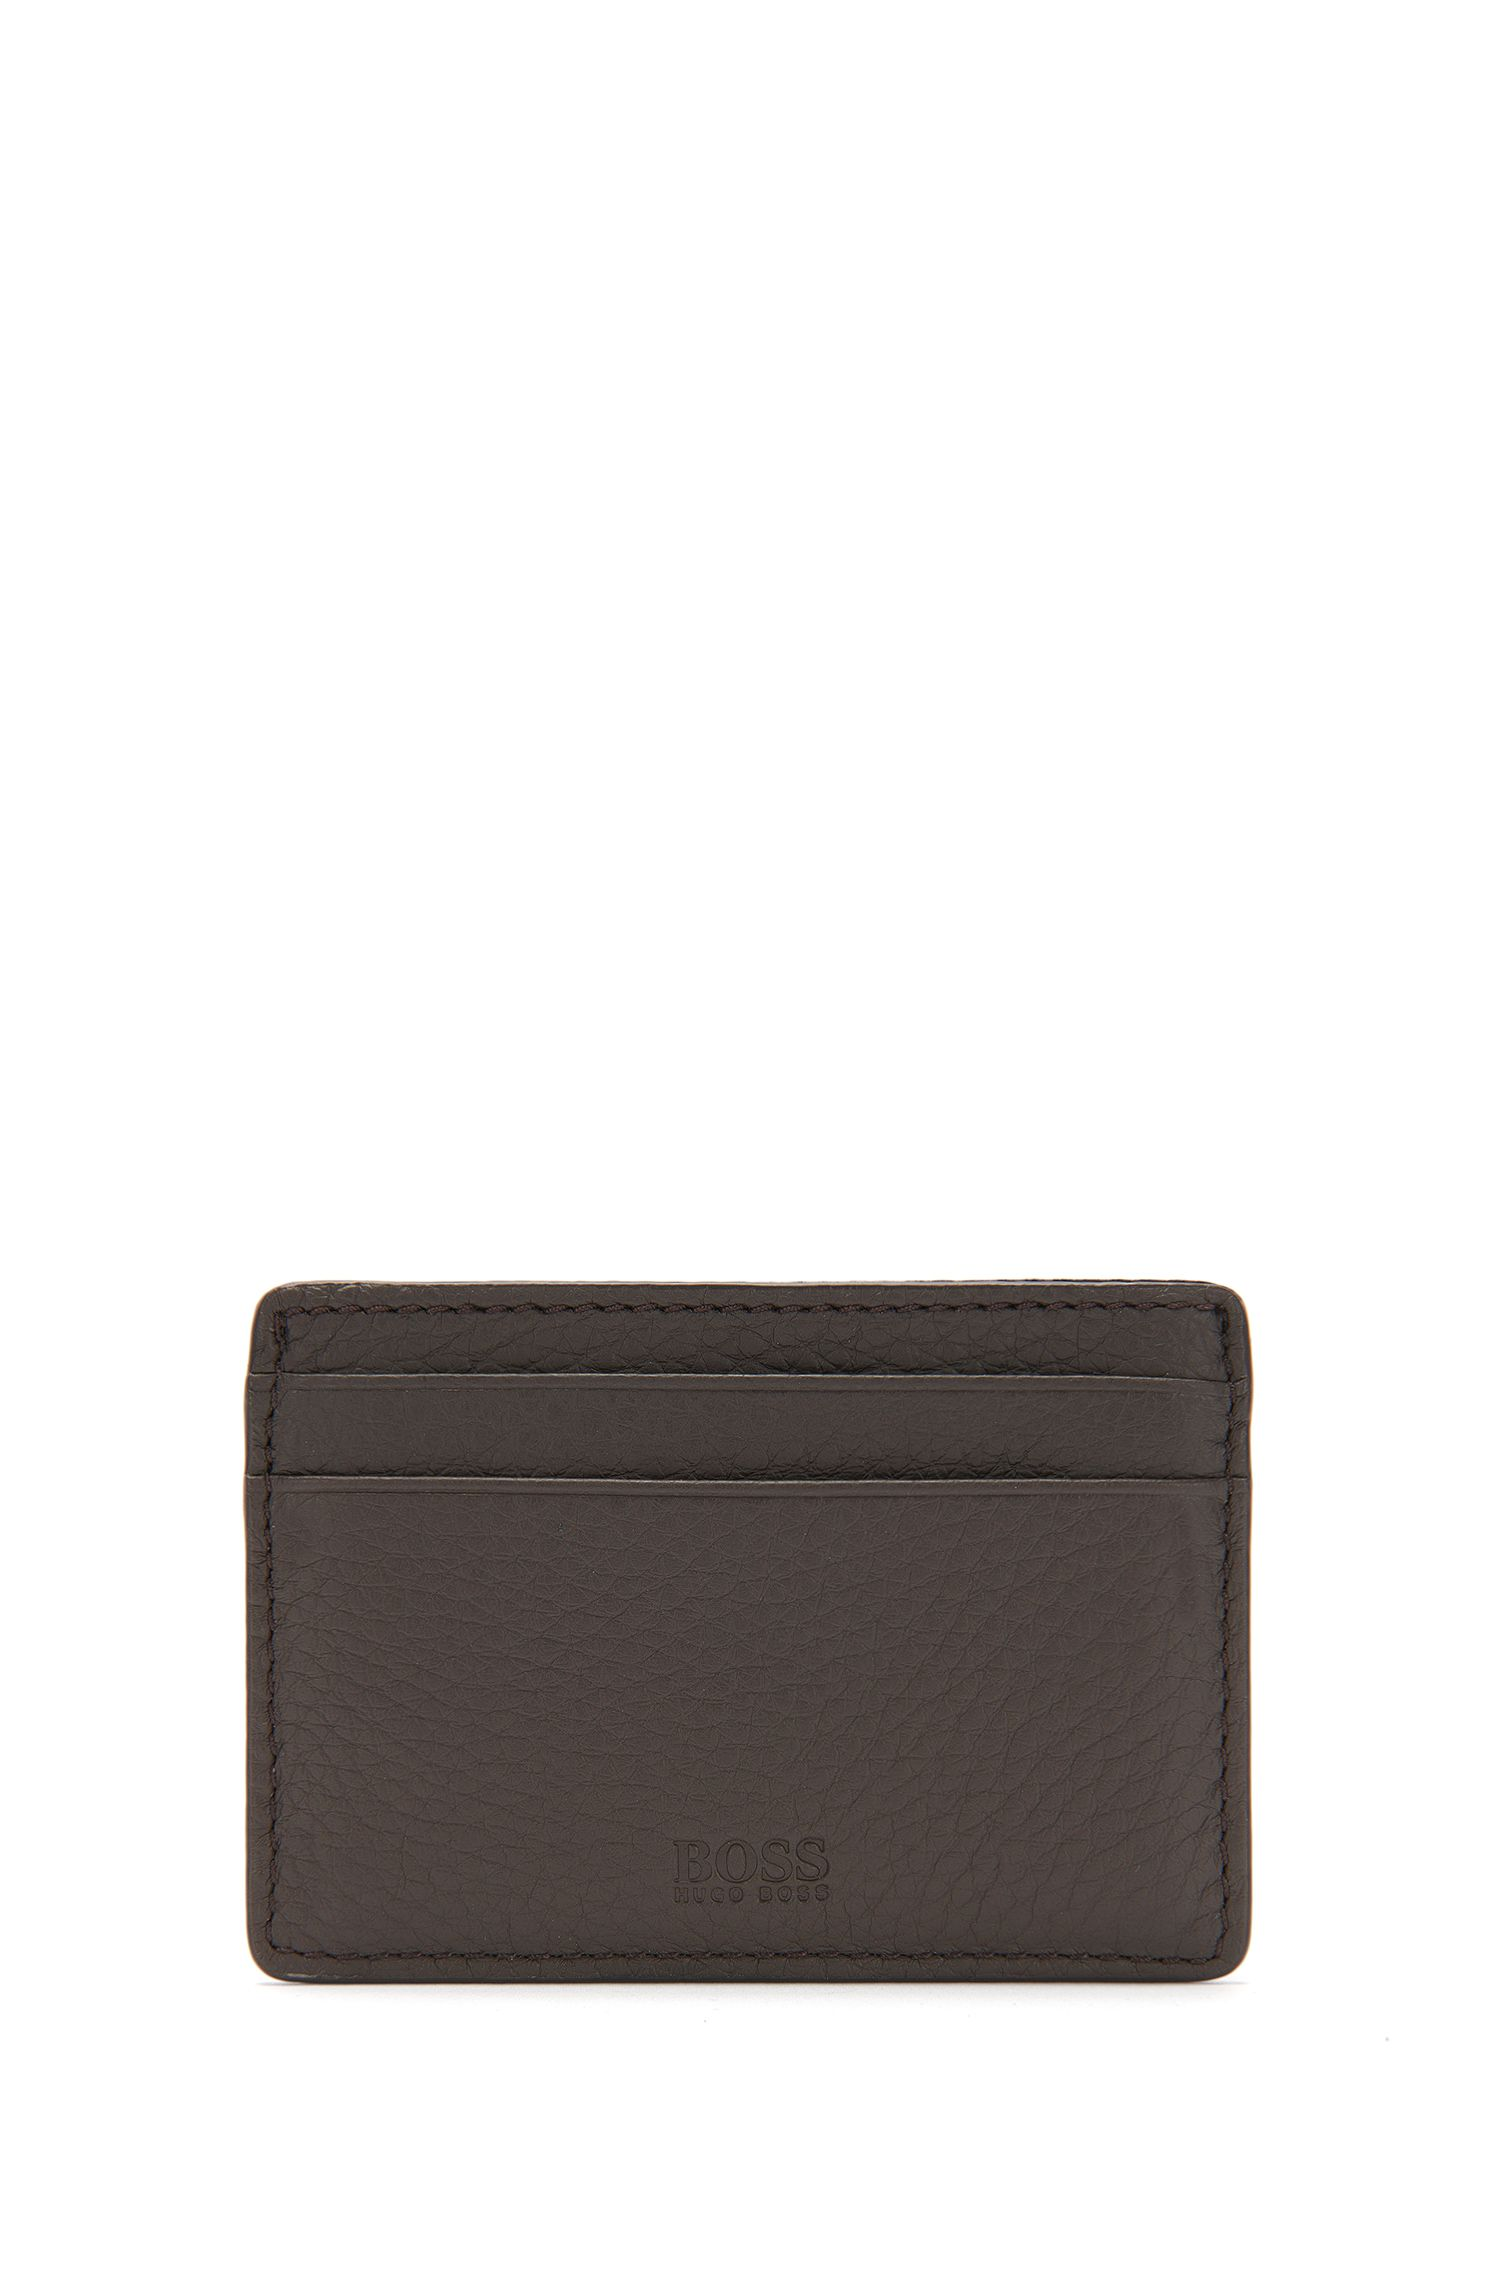 Small card holder in natural grained leather